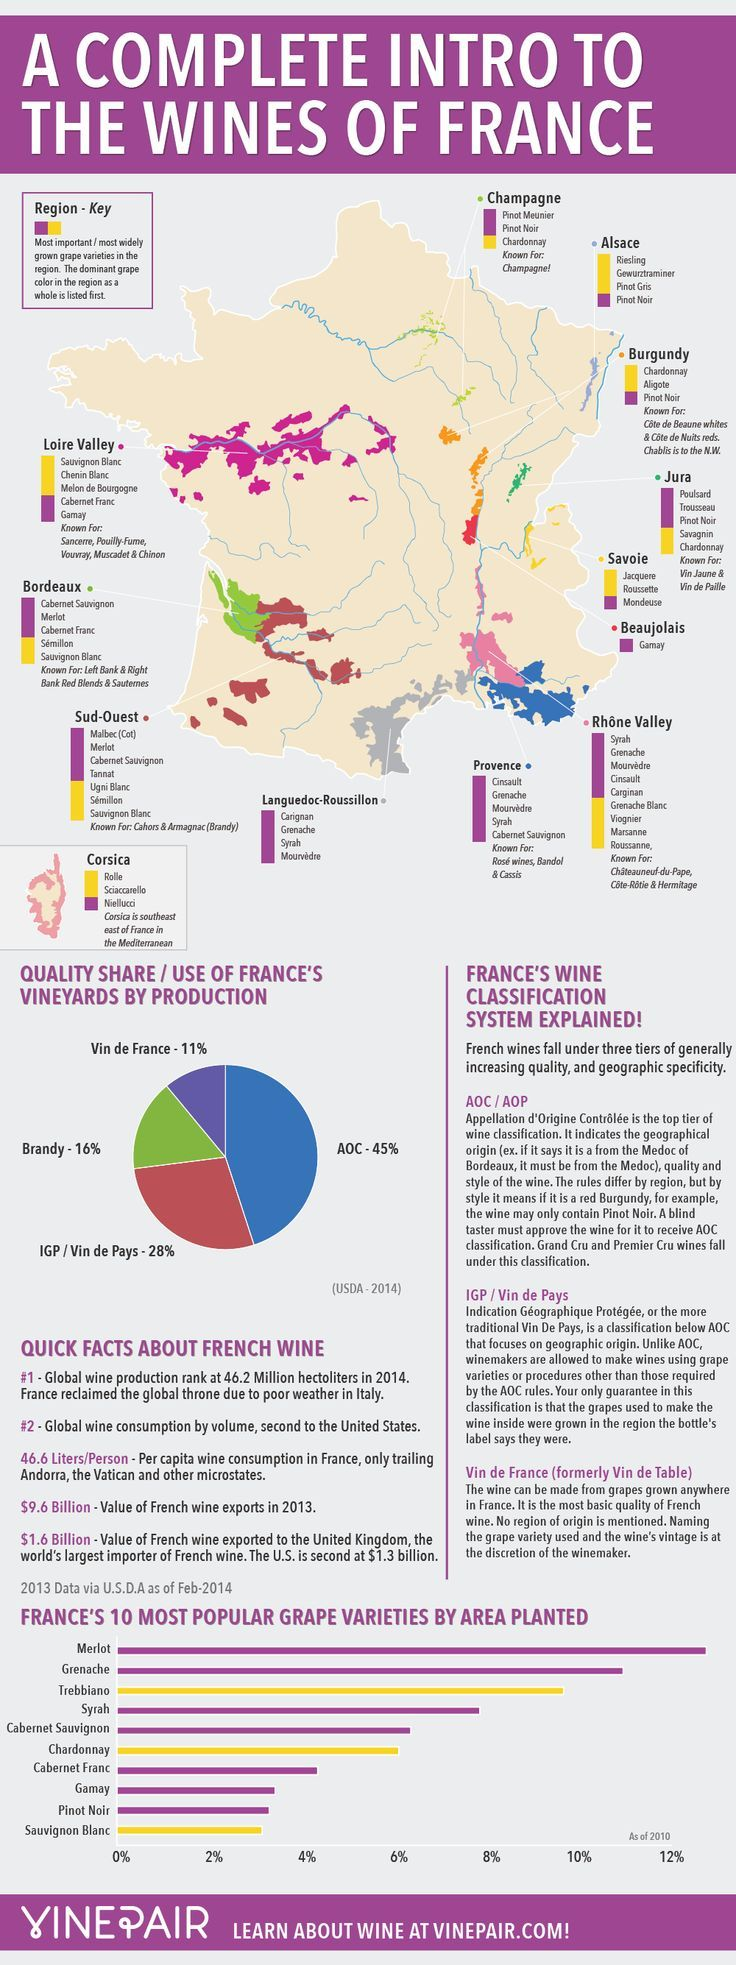 A Complete Introduction To The Wines Of France: Map & Infographic. http://vinepair.com/wine-blog/intro-wines-of-france-map-infographic/